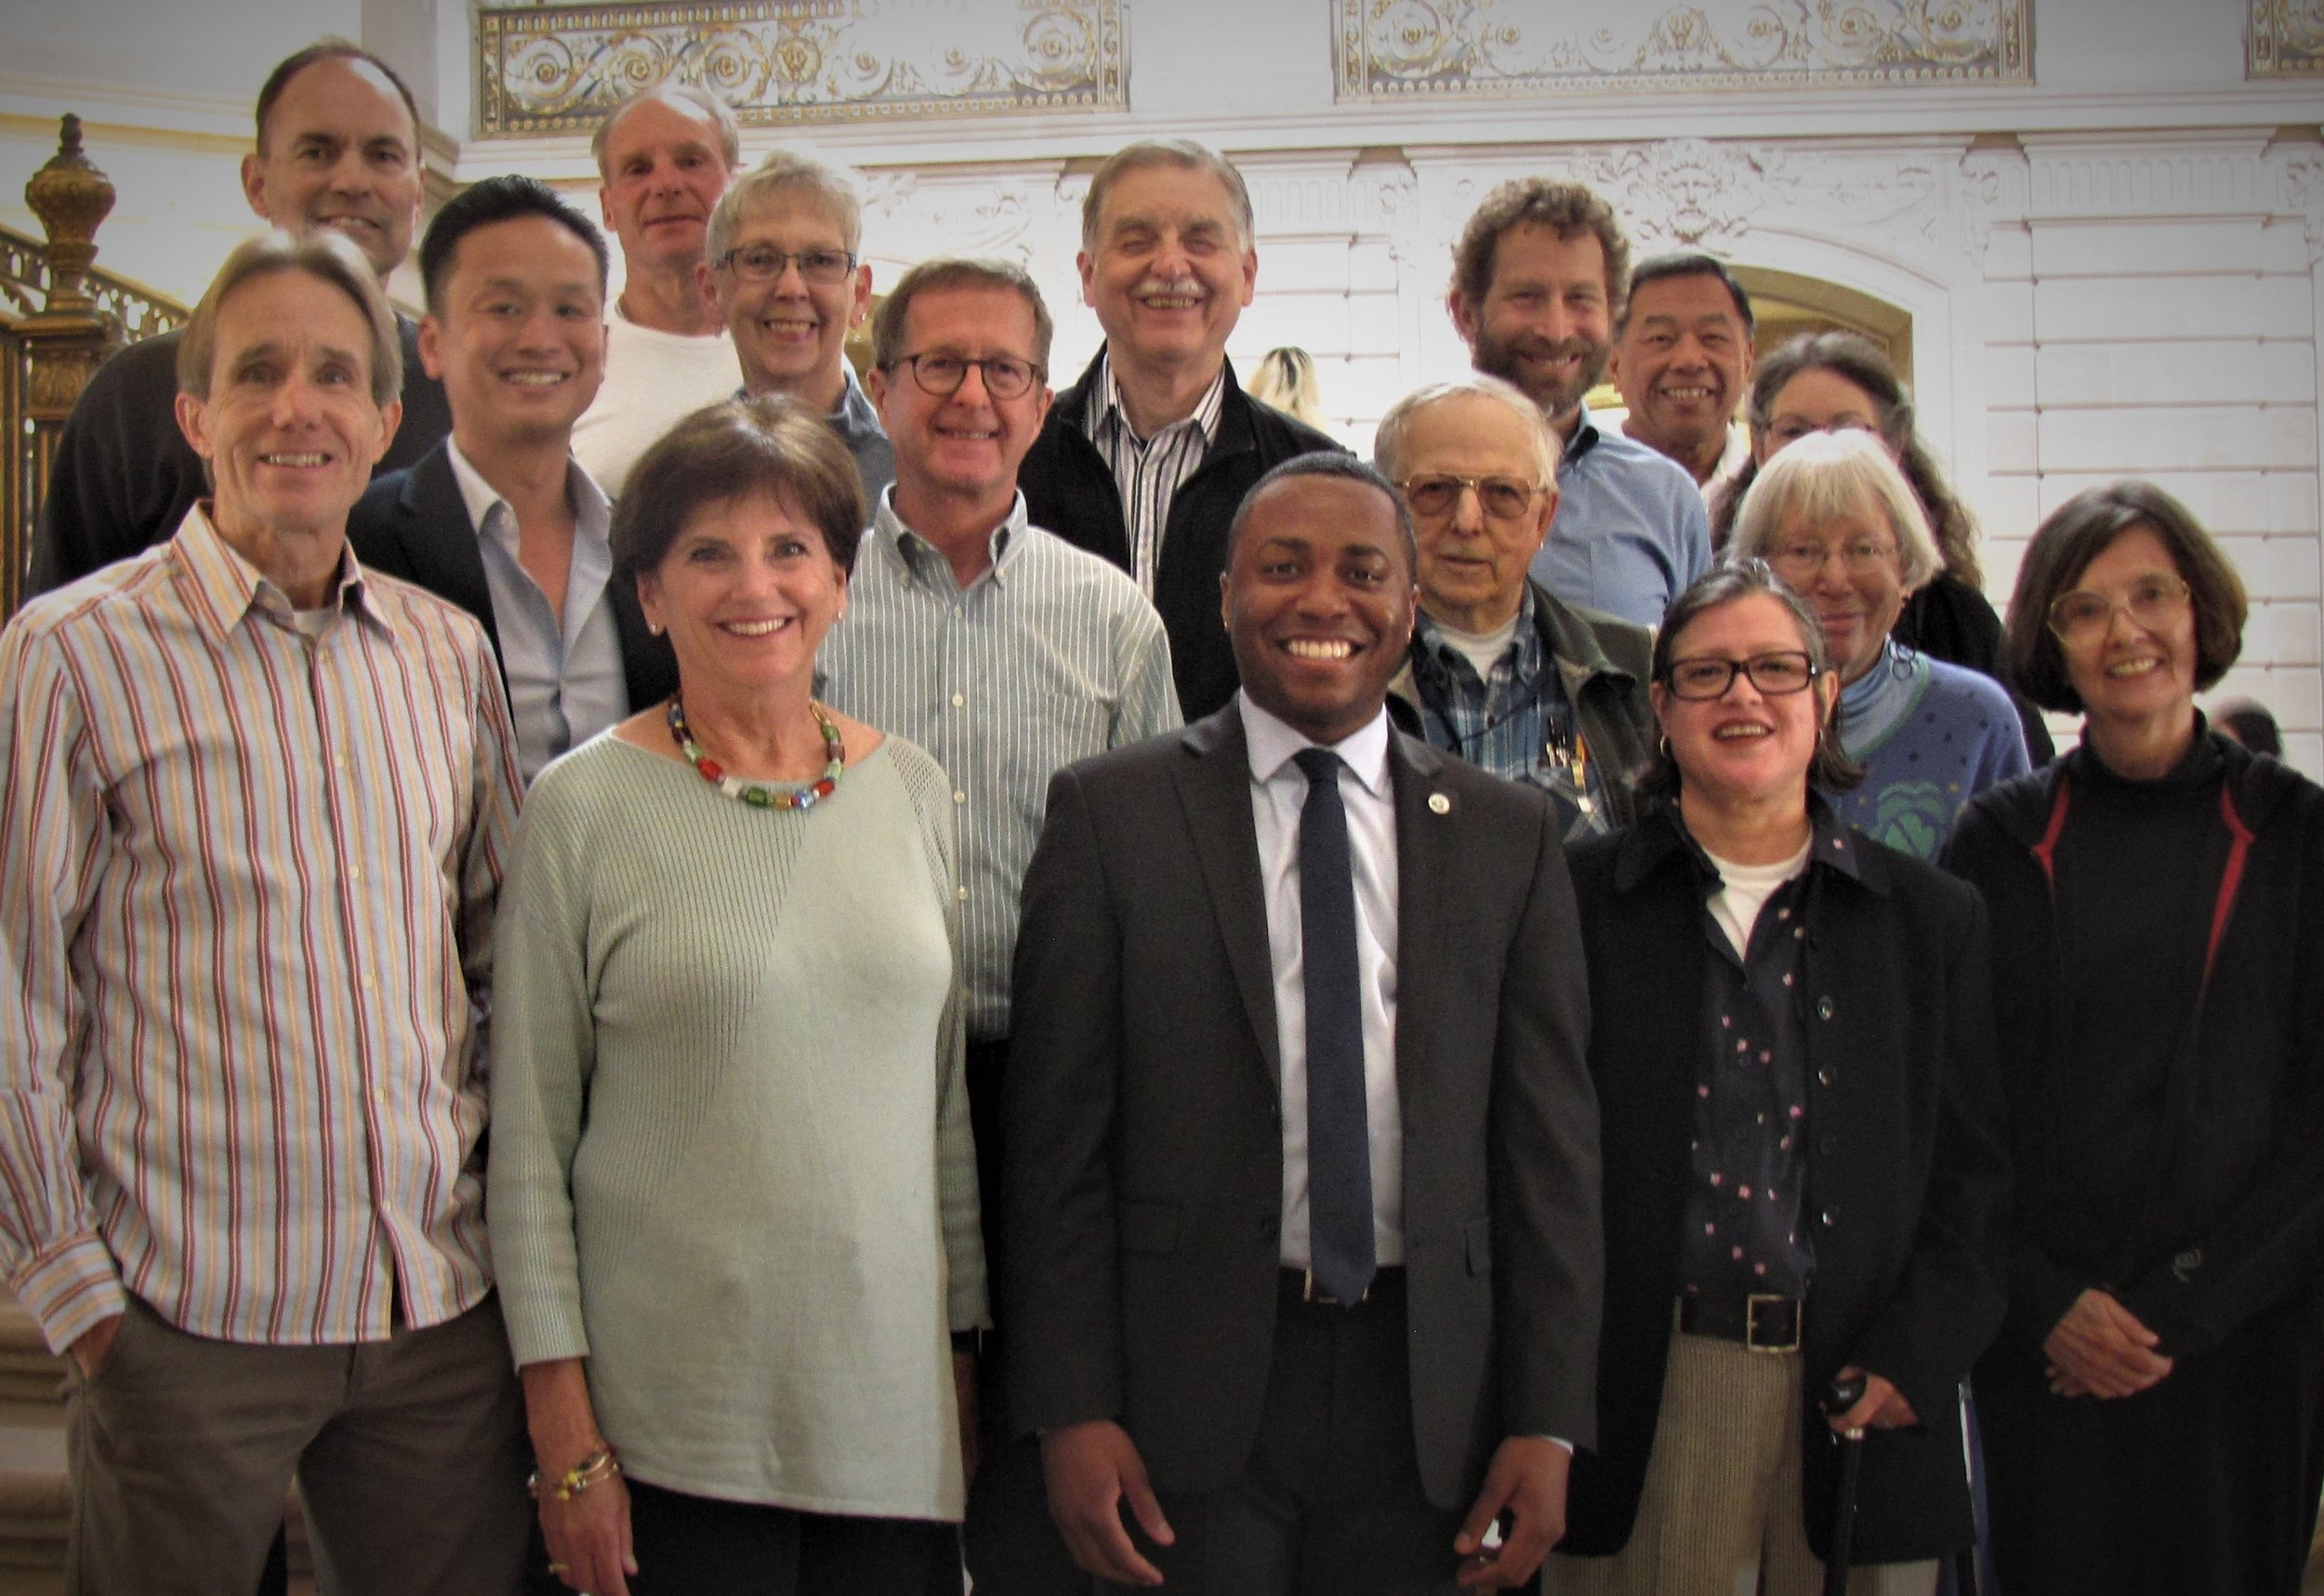 The 2019 San Francisco Civil Grand Jury. Photo courtesy Janet Andrews Howes.